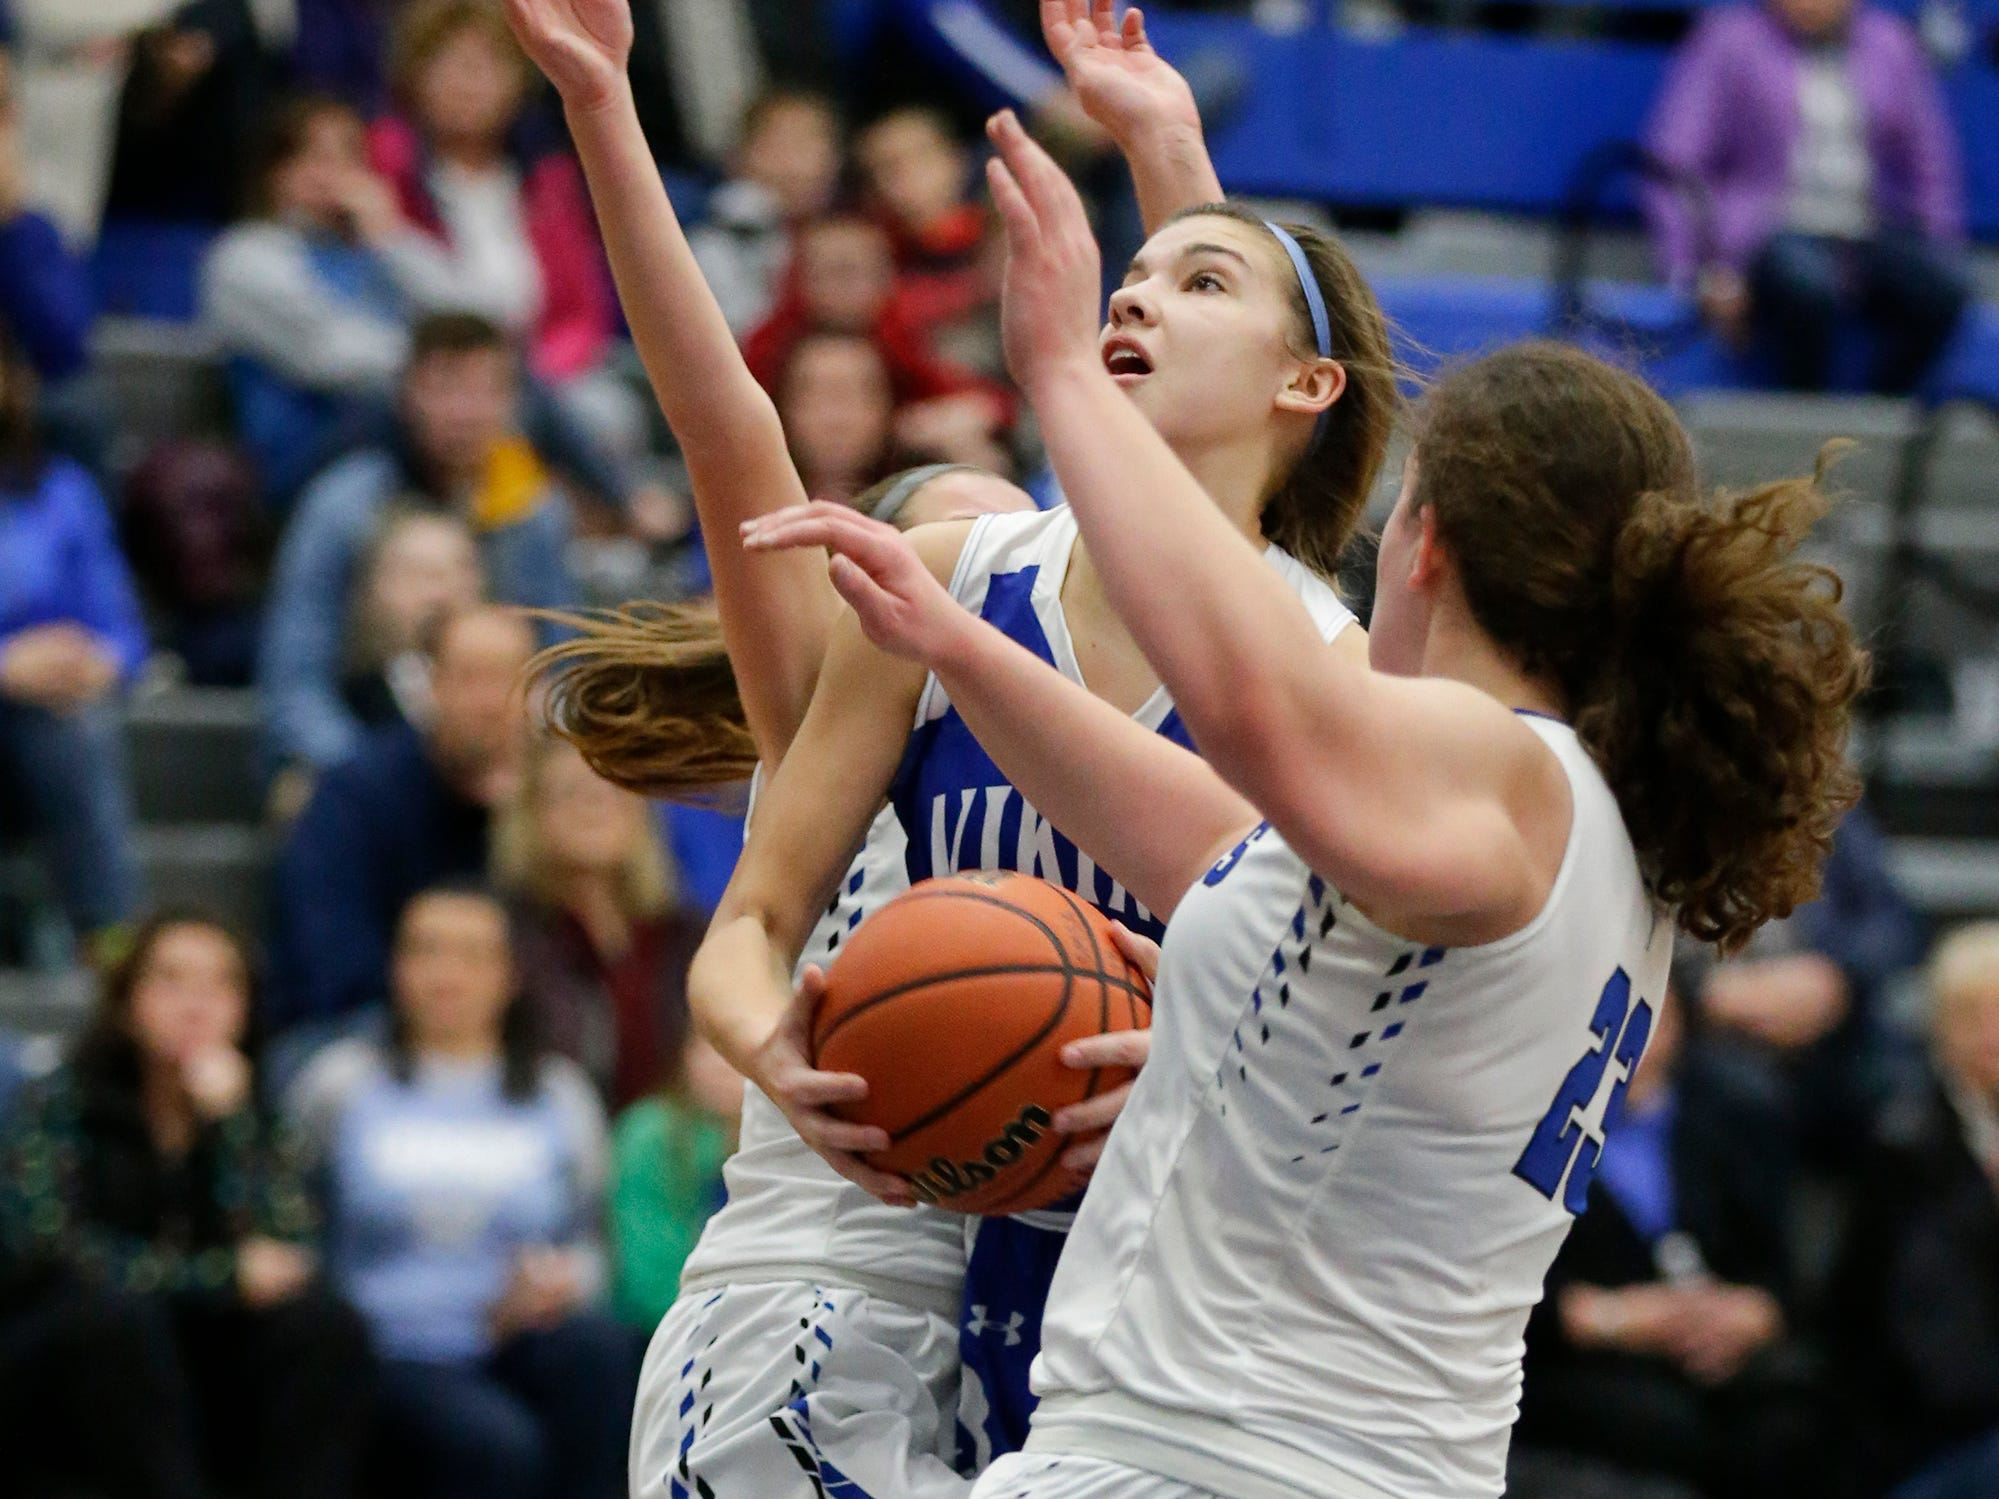 Winnebago Lutheran Academy girls basketball's Kaylee Frey drives in torwards the basket between St. Mary's Springs Academy's Jennifer Chatterton and Cecelia Rodriguez during their game Tuesday, December 18, 2018 in Fond du Lac. Winnebago Lutheran Academy won the game 58-54. Doug Raflik/USA TODAY NETWORK-Wisconsin